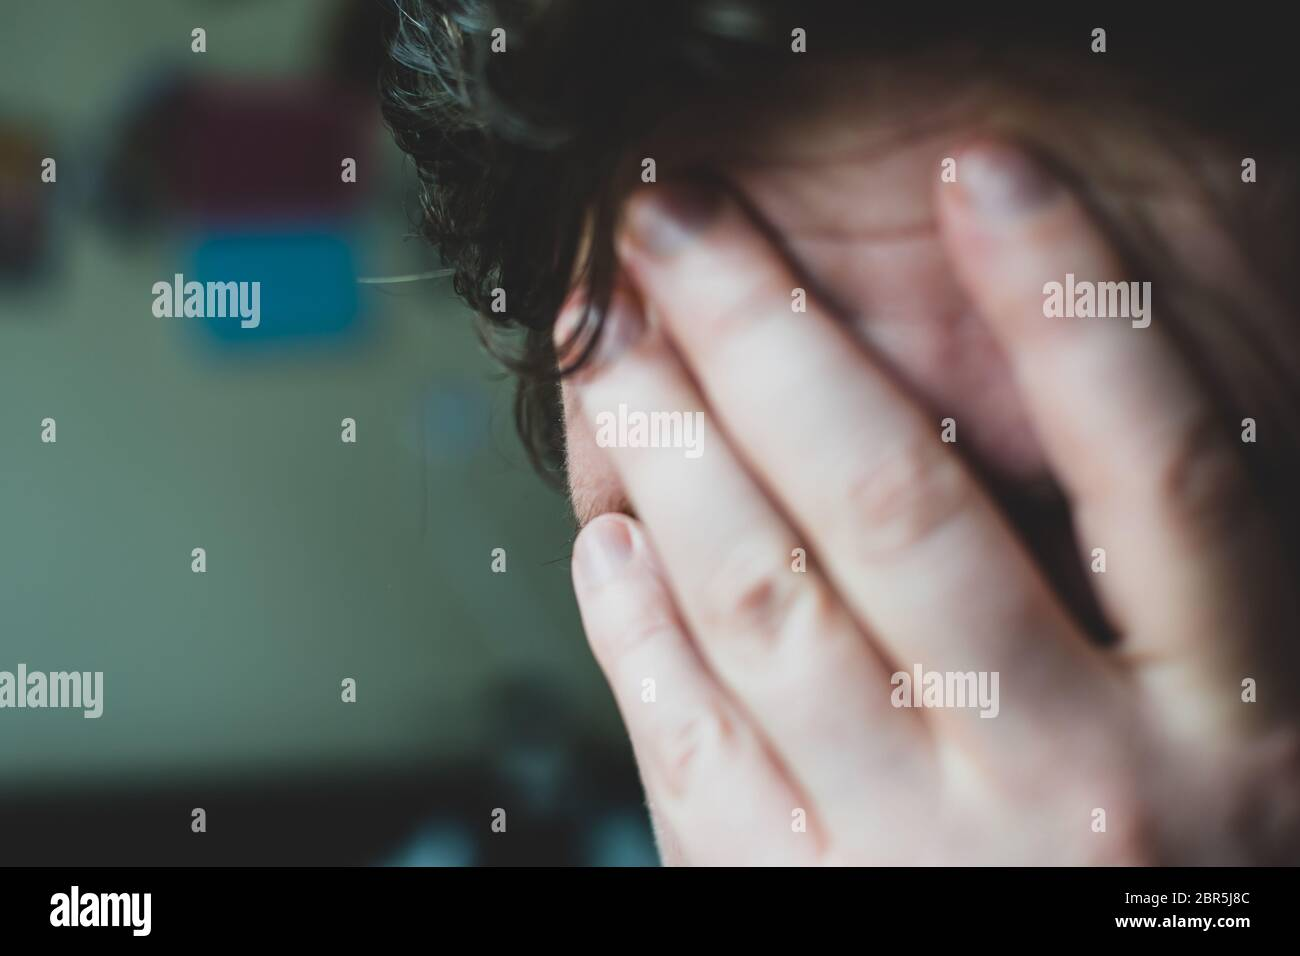 An overwhelmed man covers his face with his hand. Stock Photo